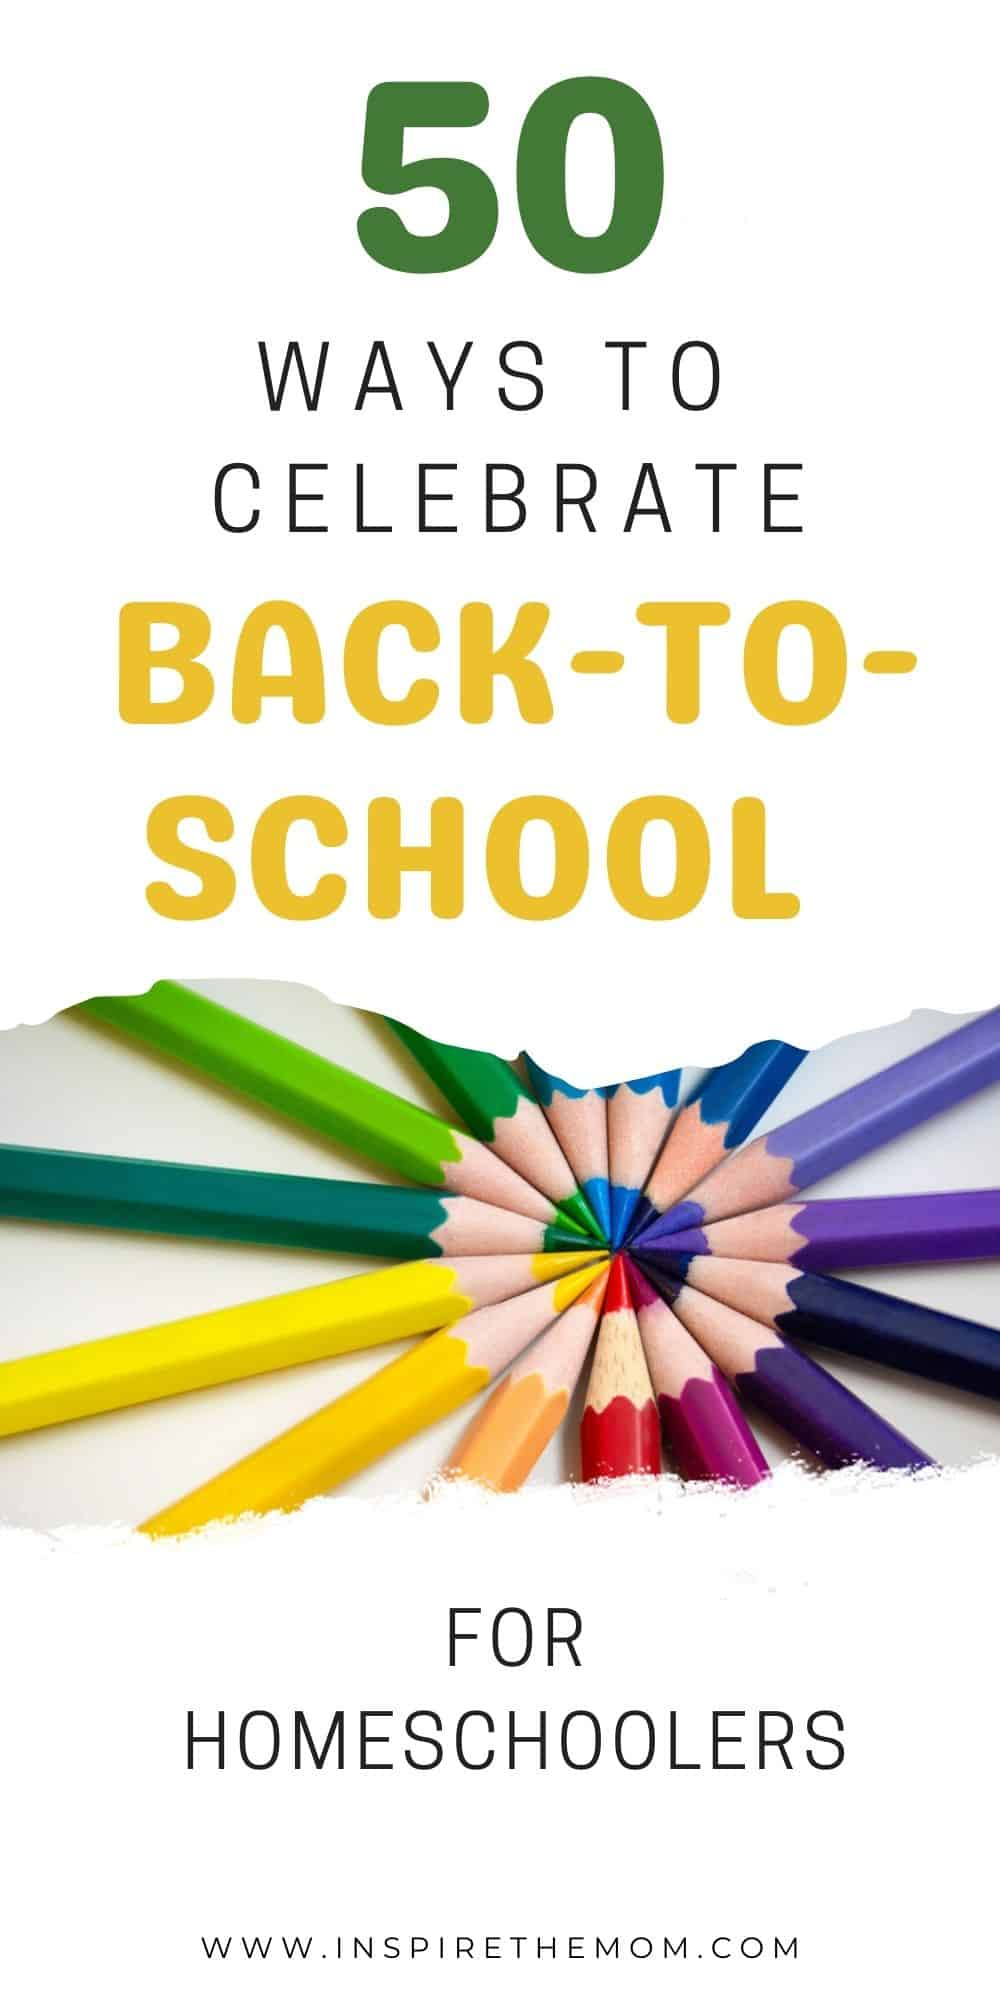 50 ways to celebrate back to school for homeschoolers pin